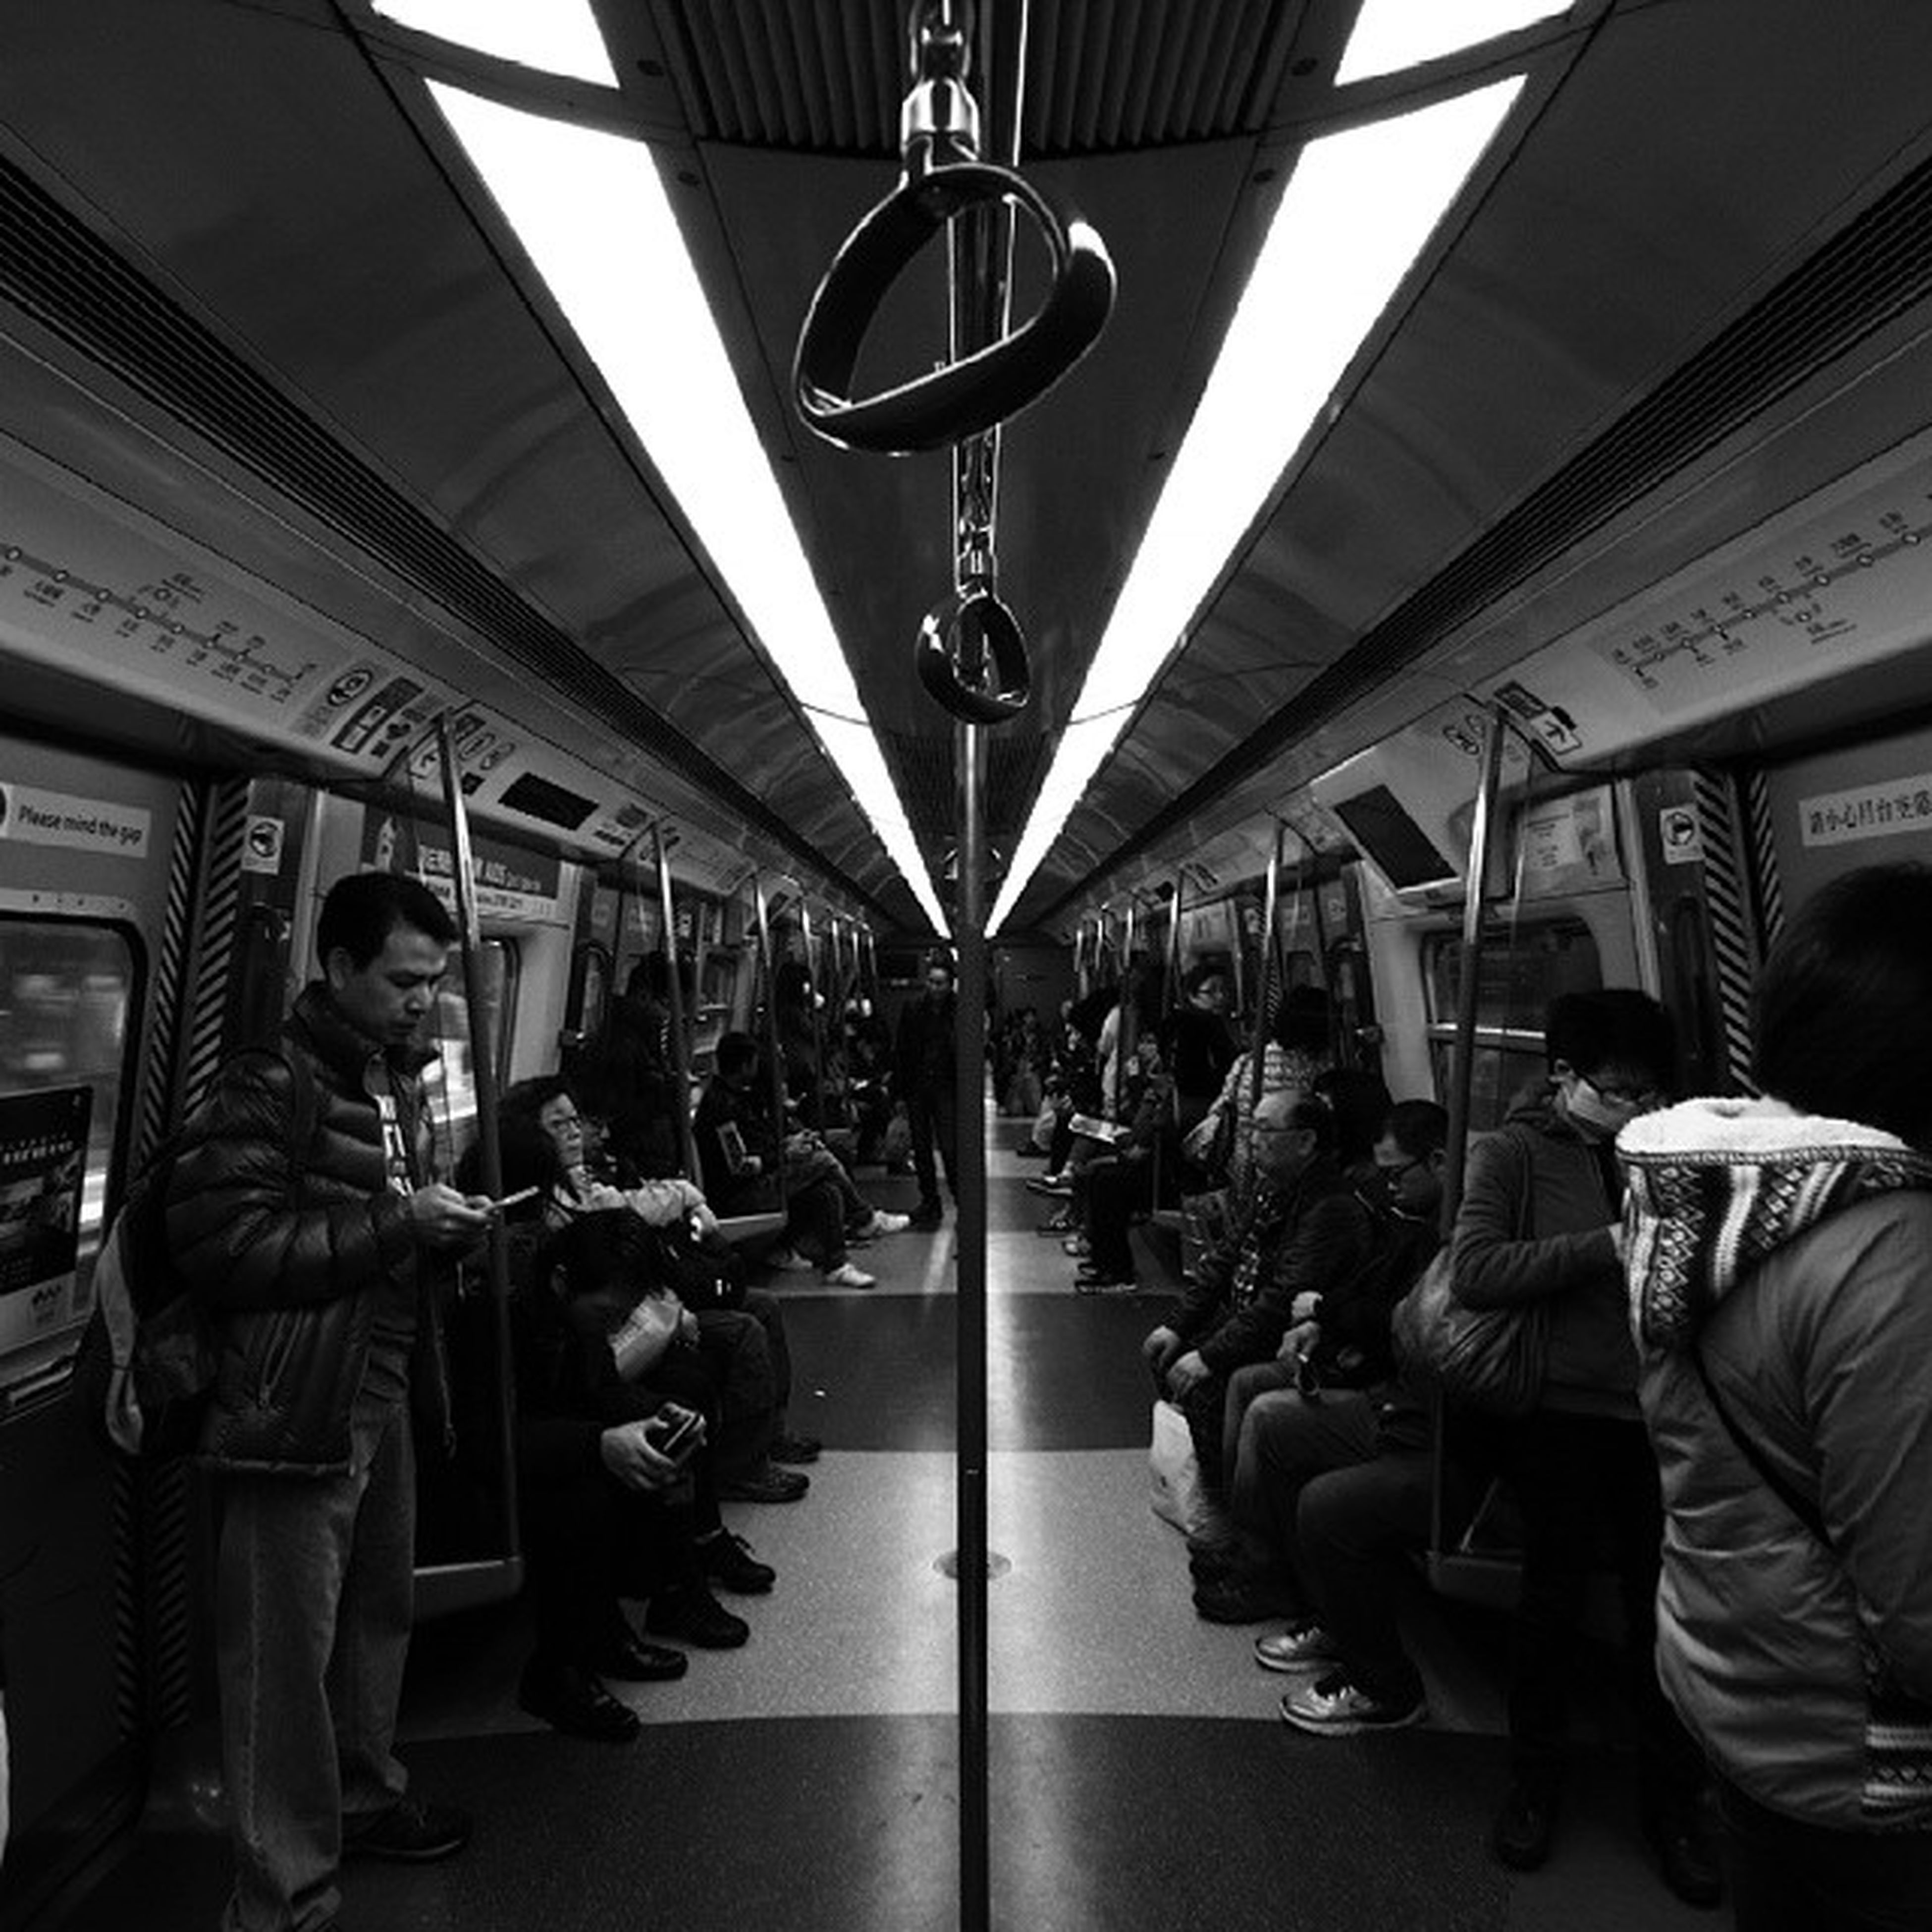 men, lifestyles, indoors, person, leisure activity, large group of people, transportation, medium group of people, public transportation, city life, retail, shopping, casual clothing, passenger, standing, walking, mode of transport, architecture